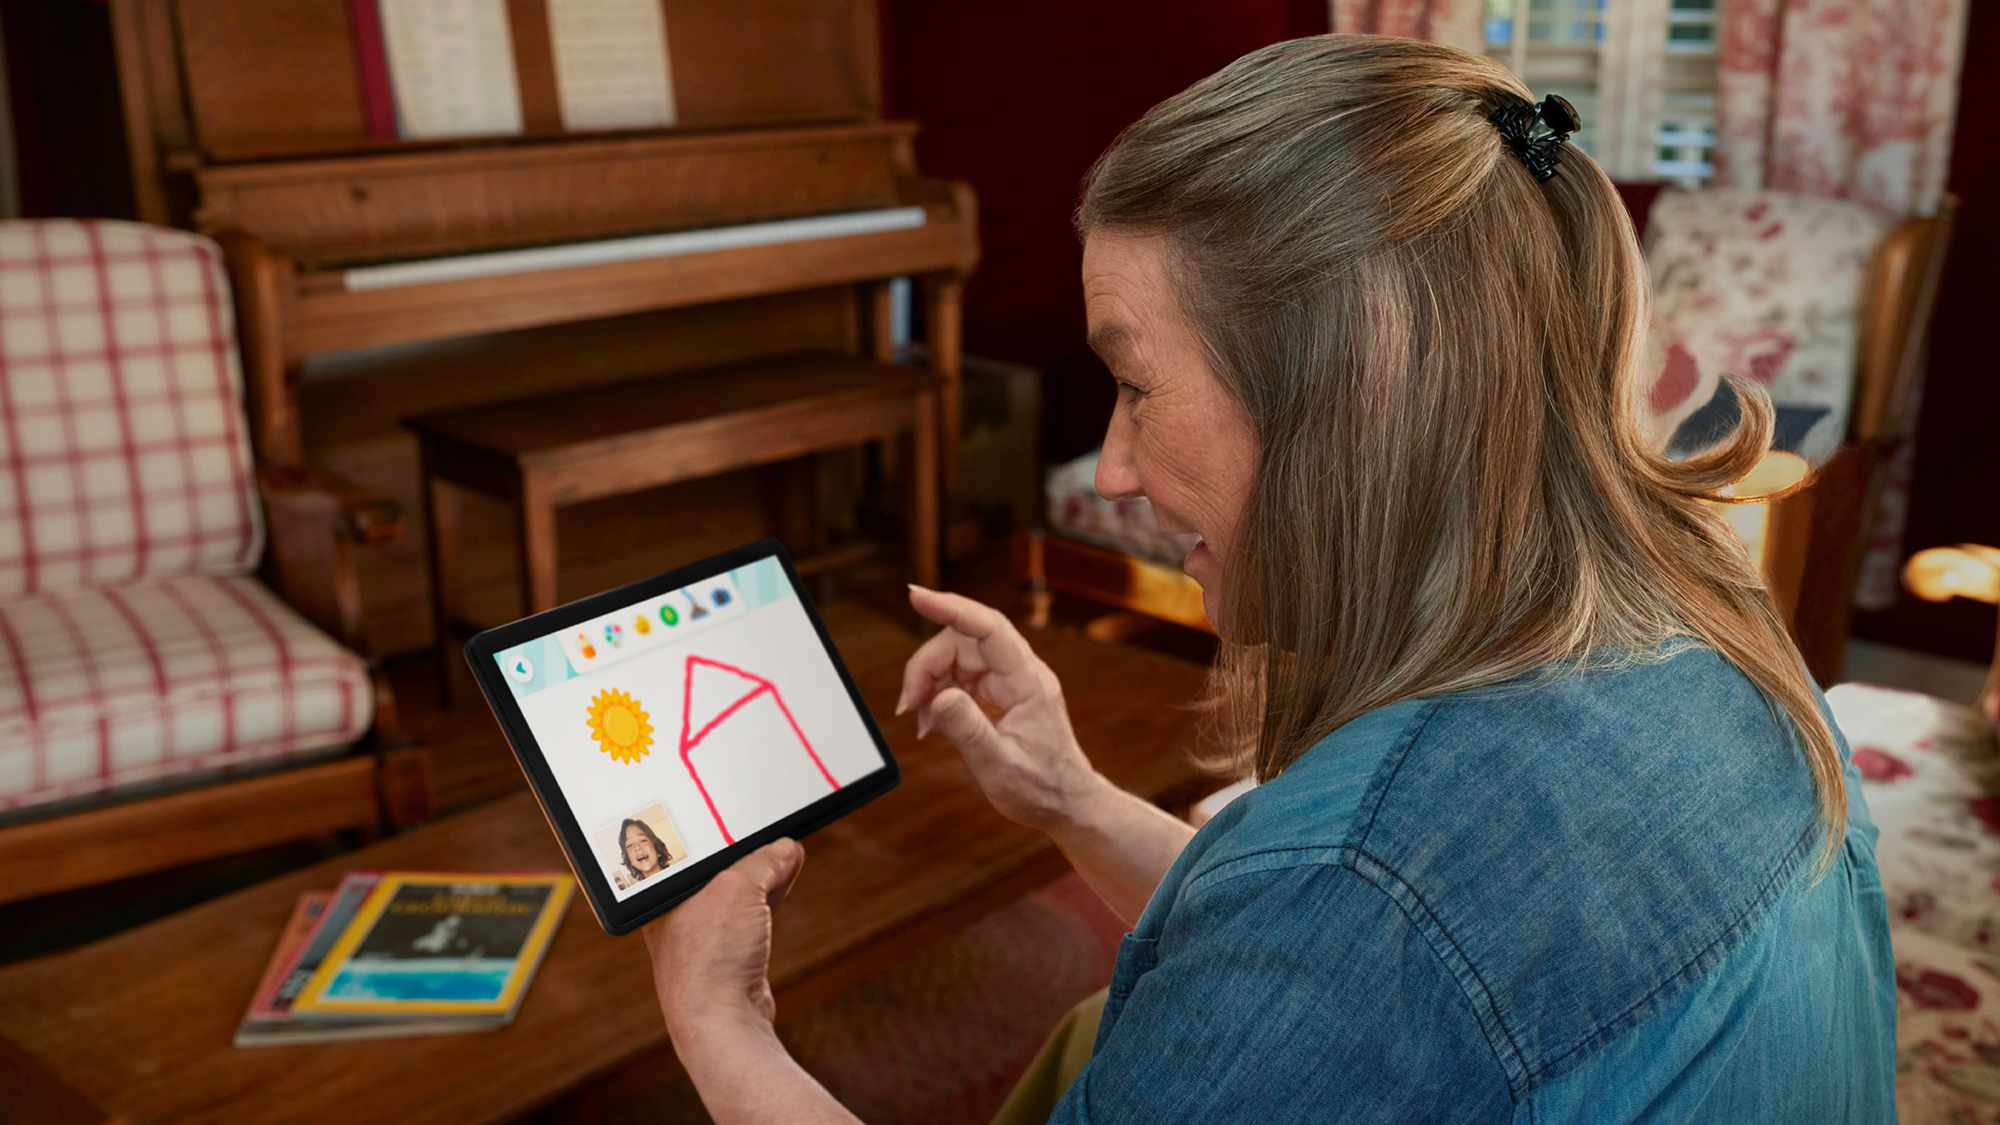 An adult interacting a child using the Amazon Glow app on a small tablet.